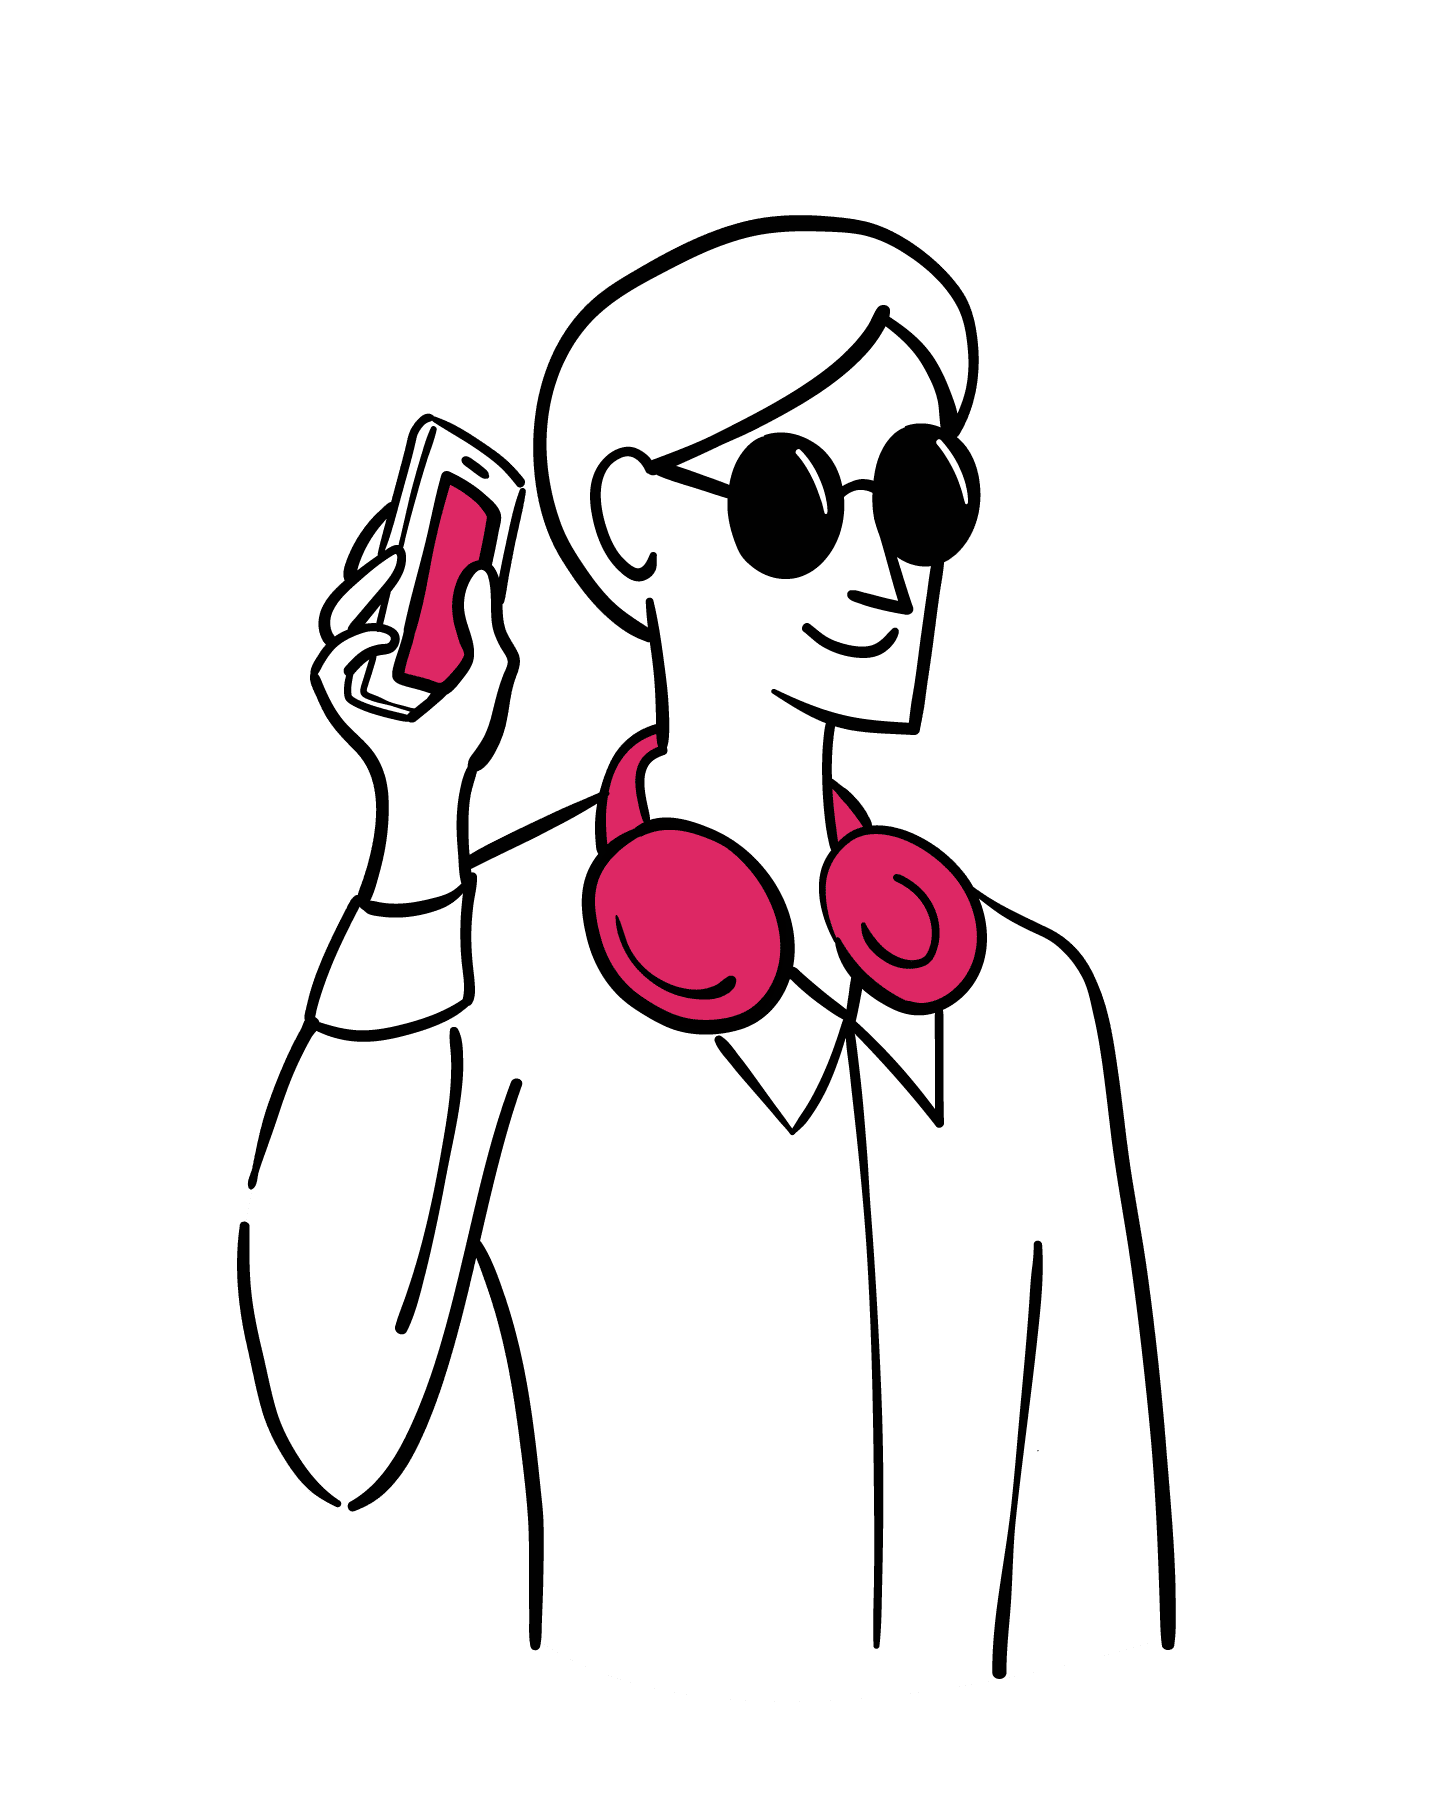 Illustration: Woman with short hair and sunglasses holds phone next to her ear as she swipes to listen to a screen reader